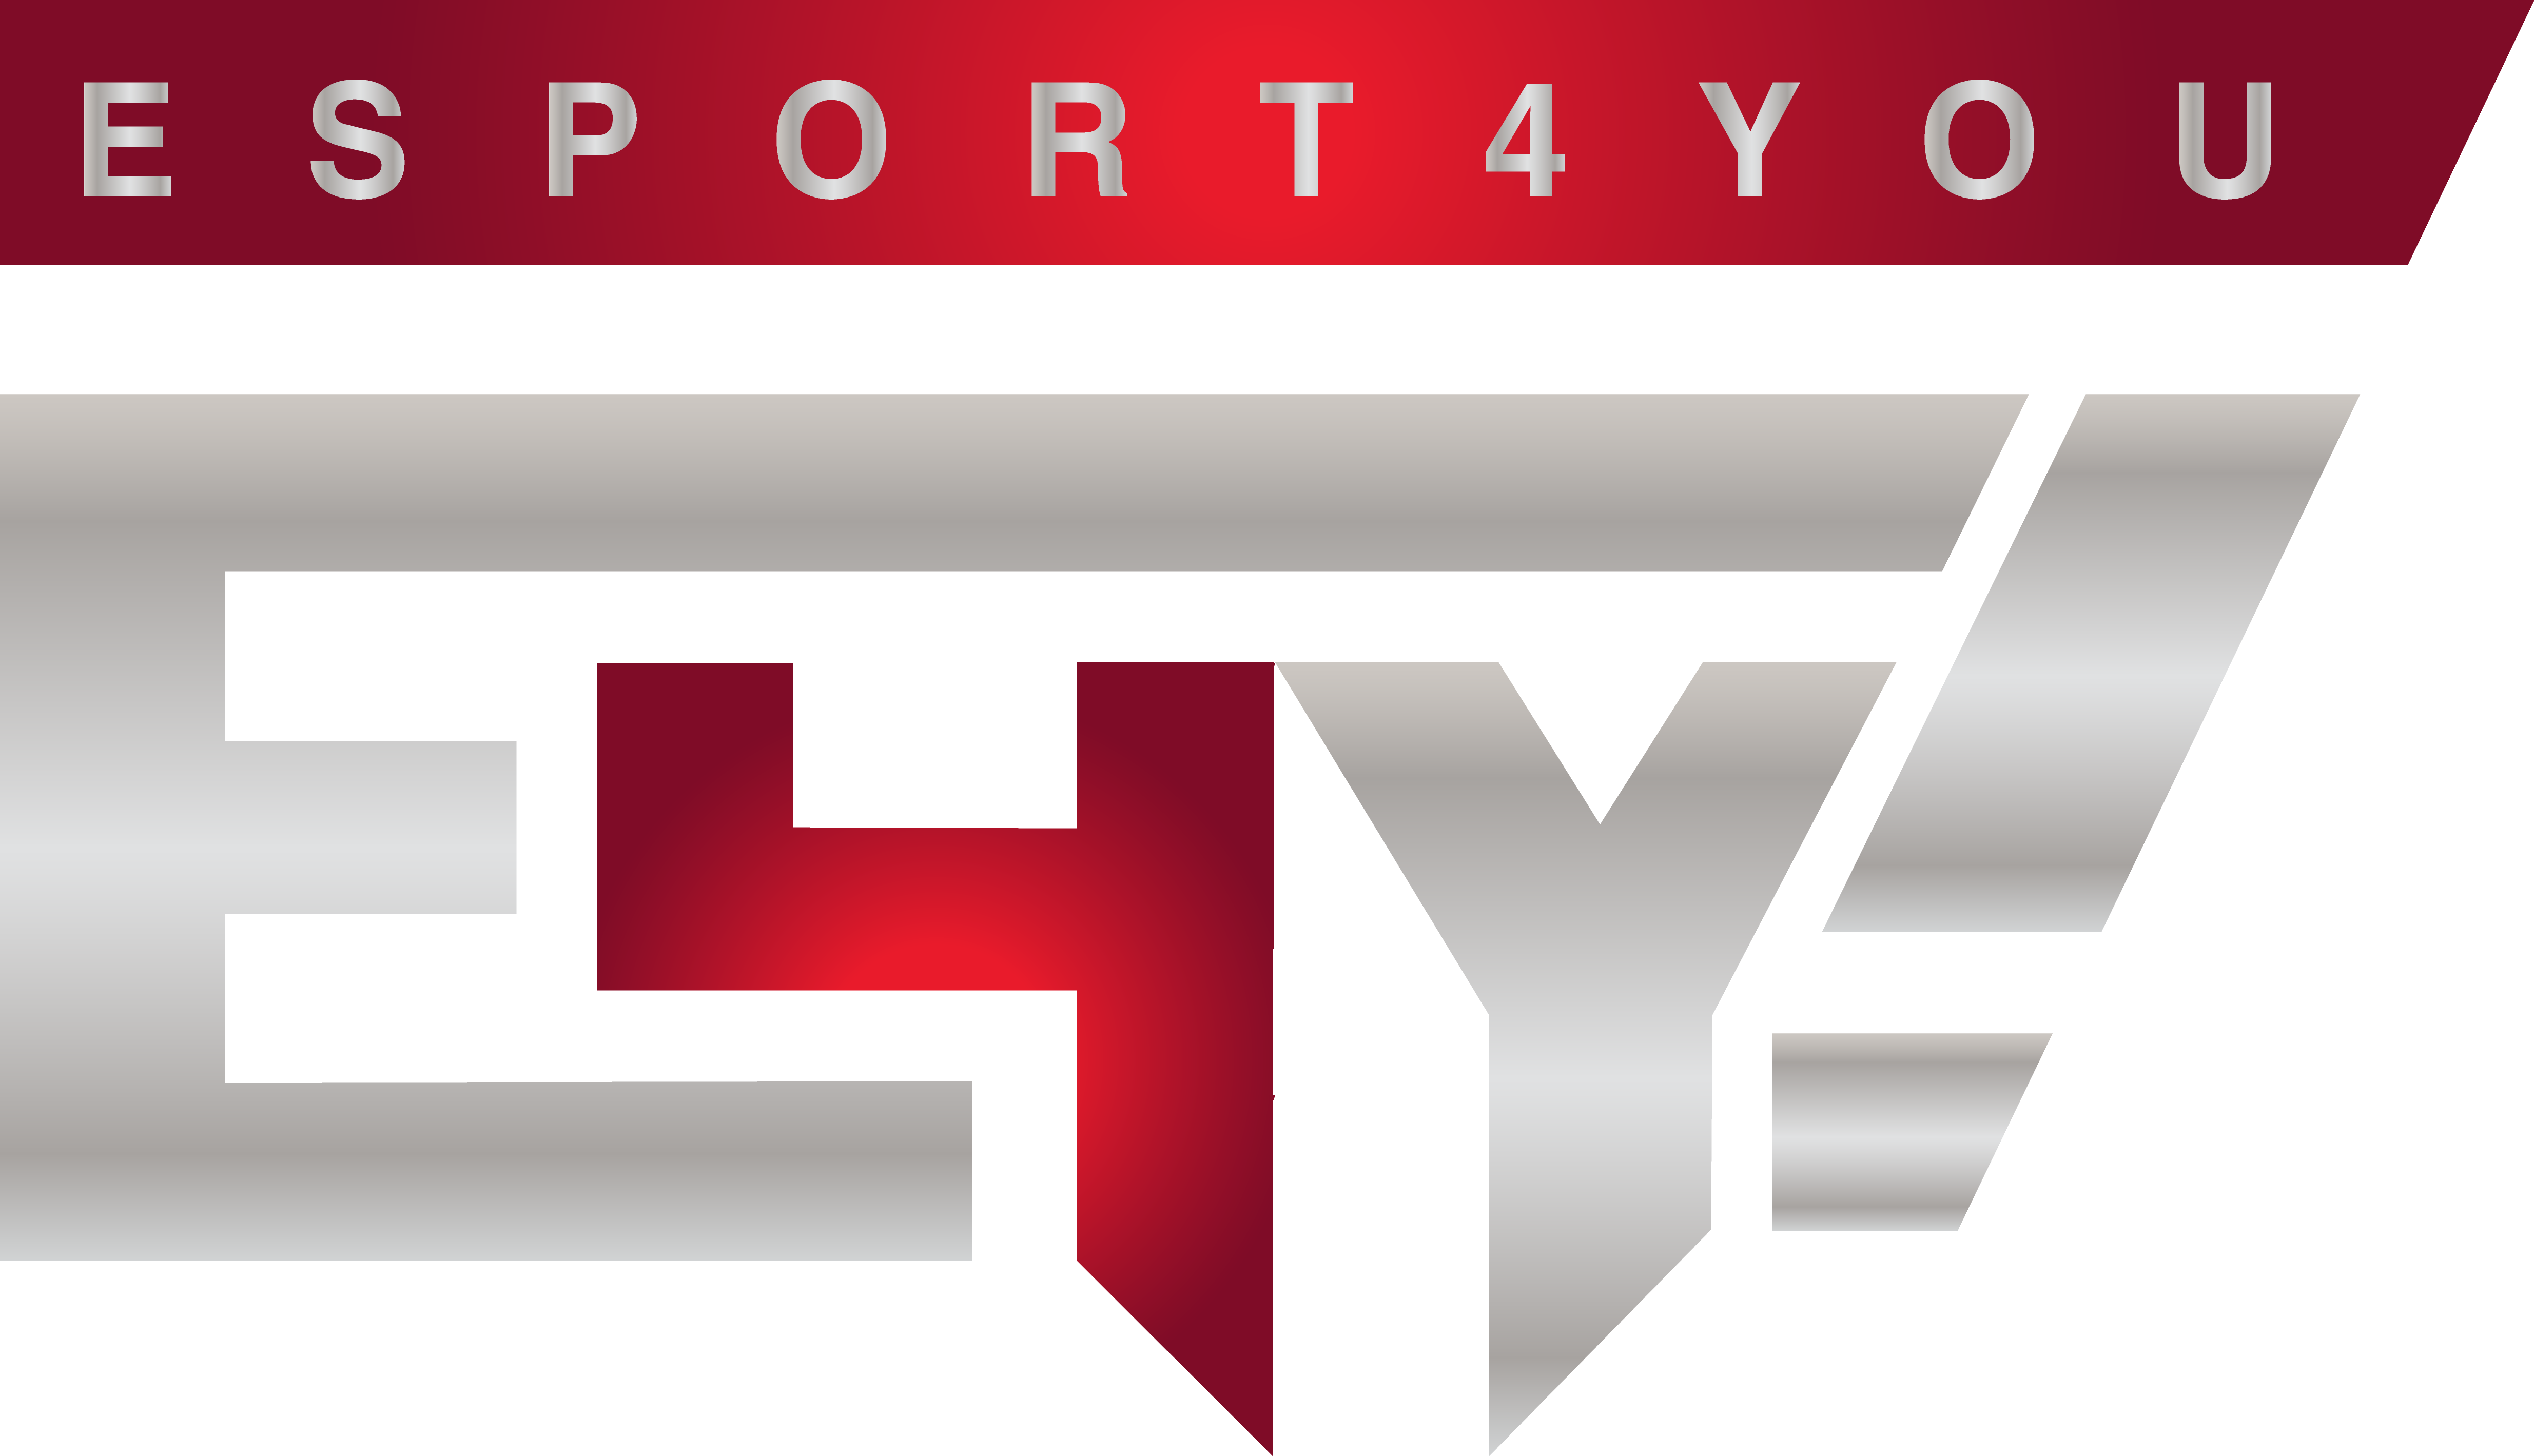 esport4you-logo